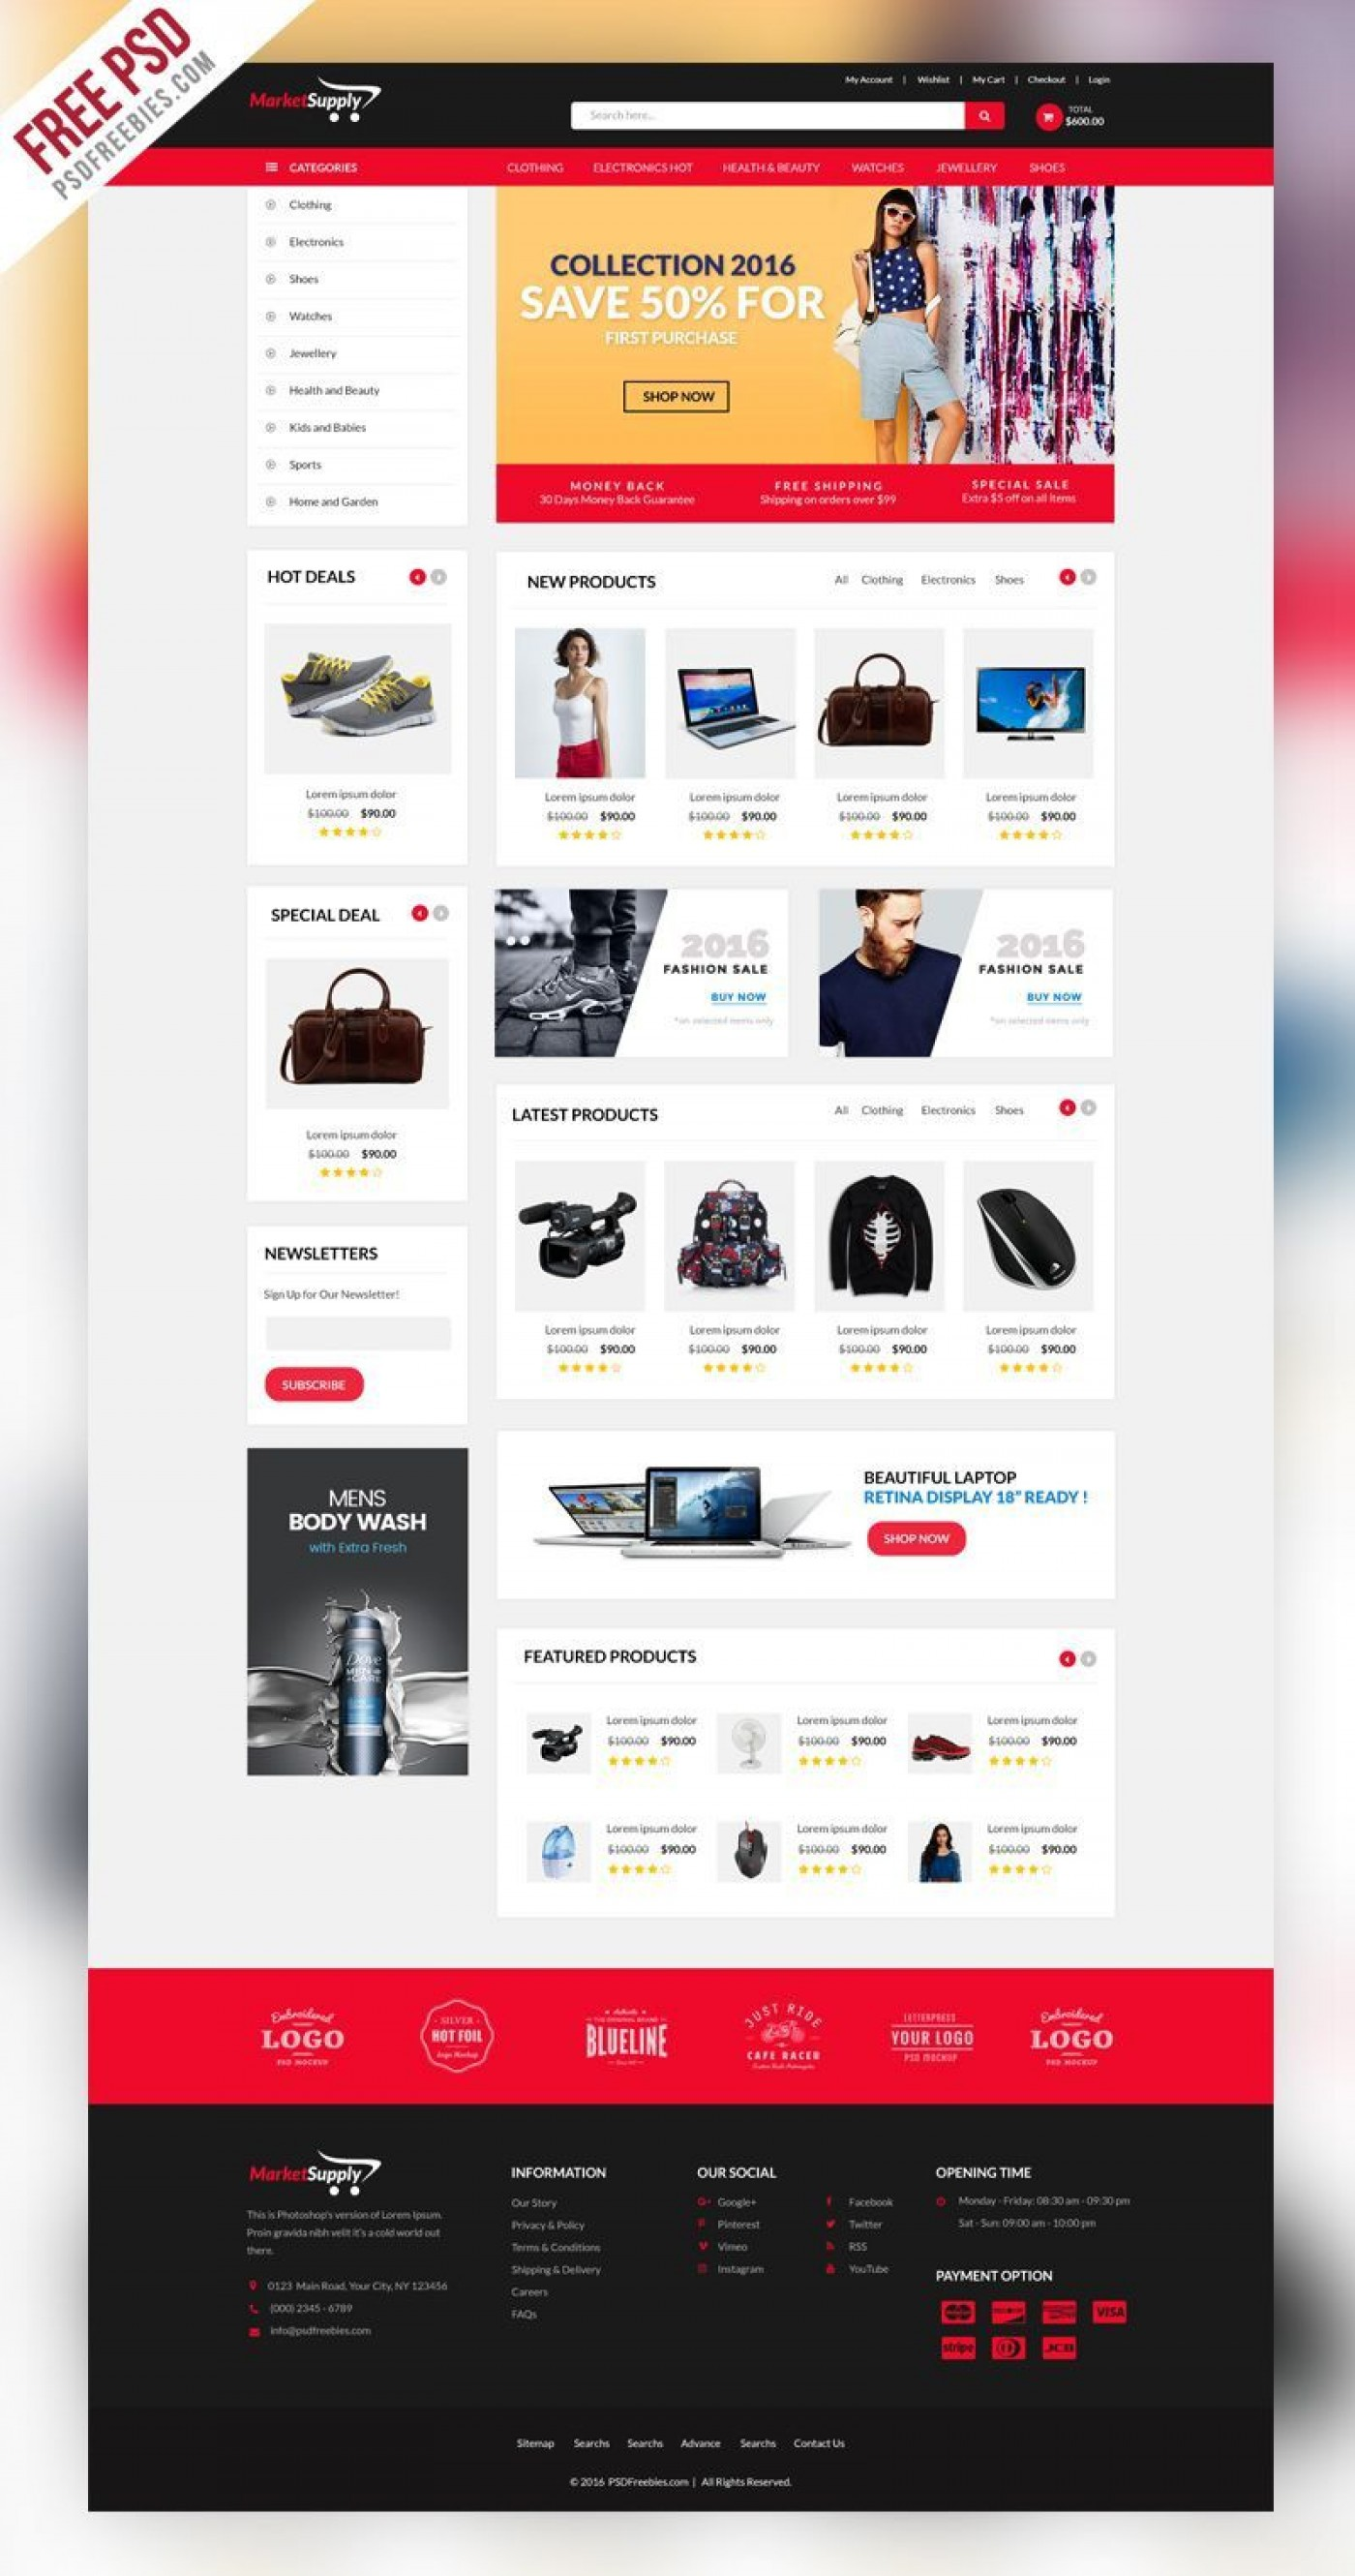 006 Amazing Ecommerce Website Template Html Free Download Design  Bootstrap 4 Responsive With Cs Jquery1400